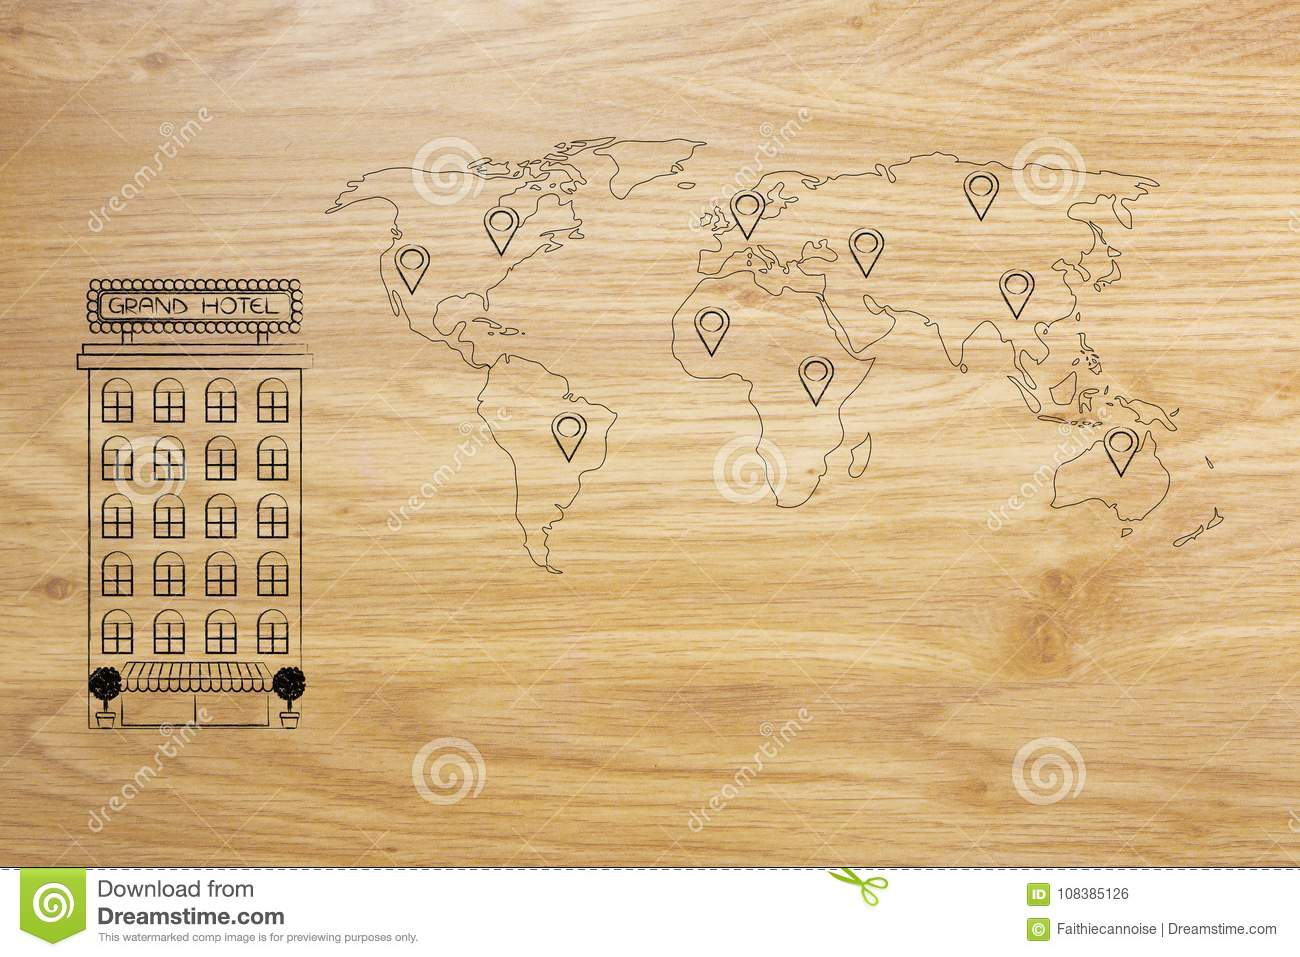 Hotel building next to world map with gps pin icons stock hotel building next to world map with gps pin icons royalty free illustration gumiabroncs Image collections